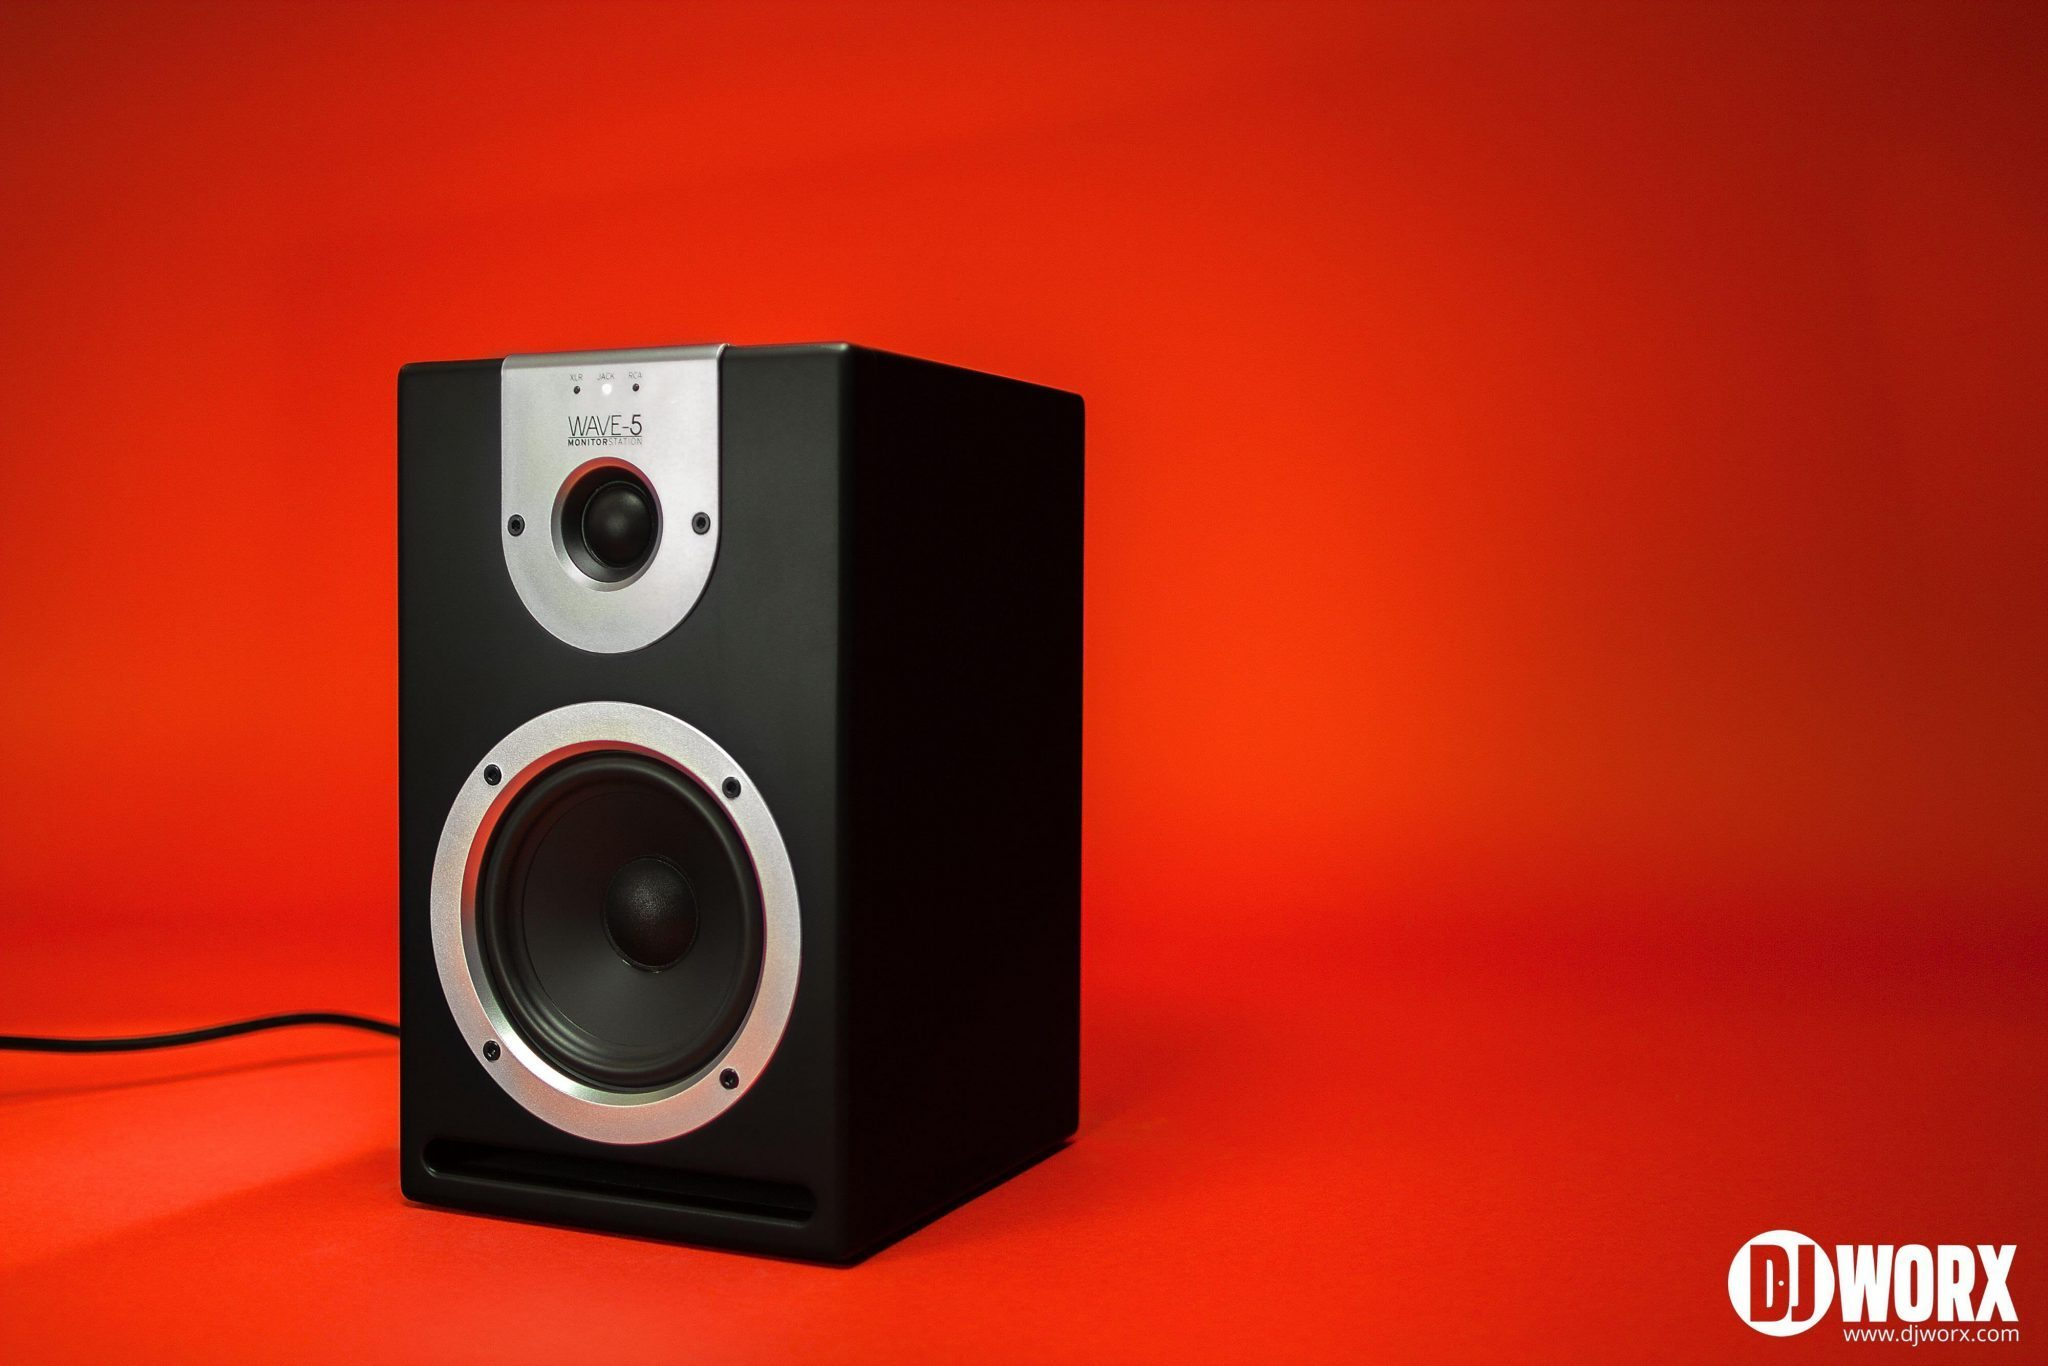 DJ studio monitors Reloop Wave 5